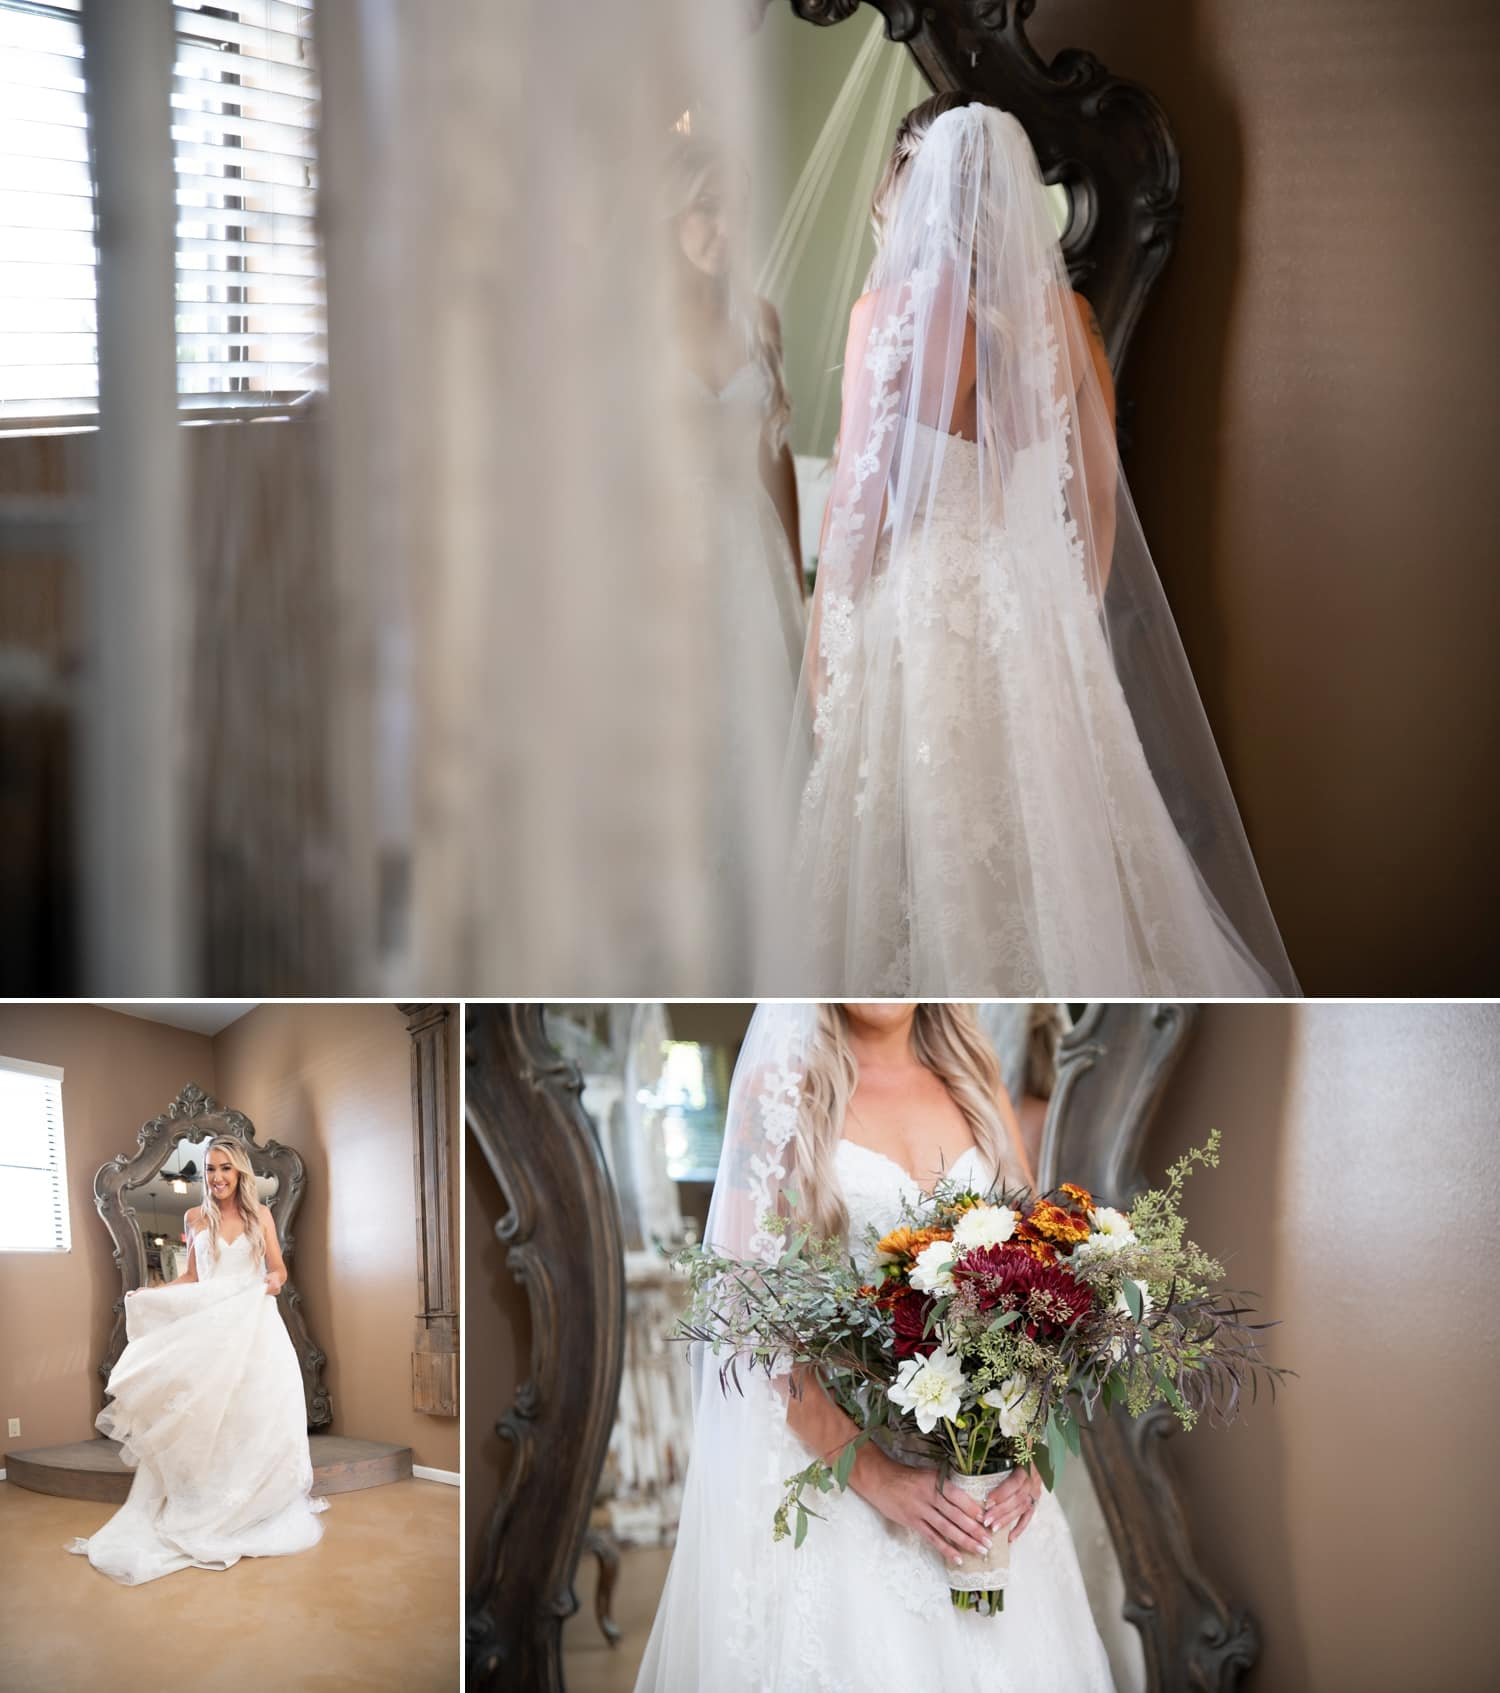 Bride in front of a mirror in the bridal suite at Ethereal Gardens.